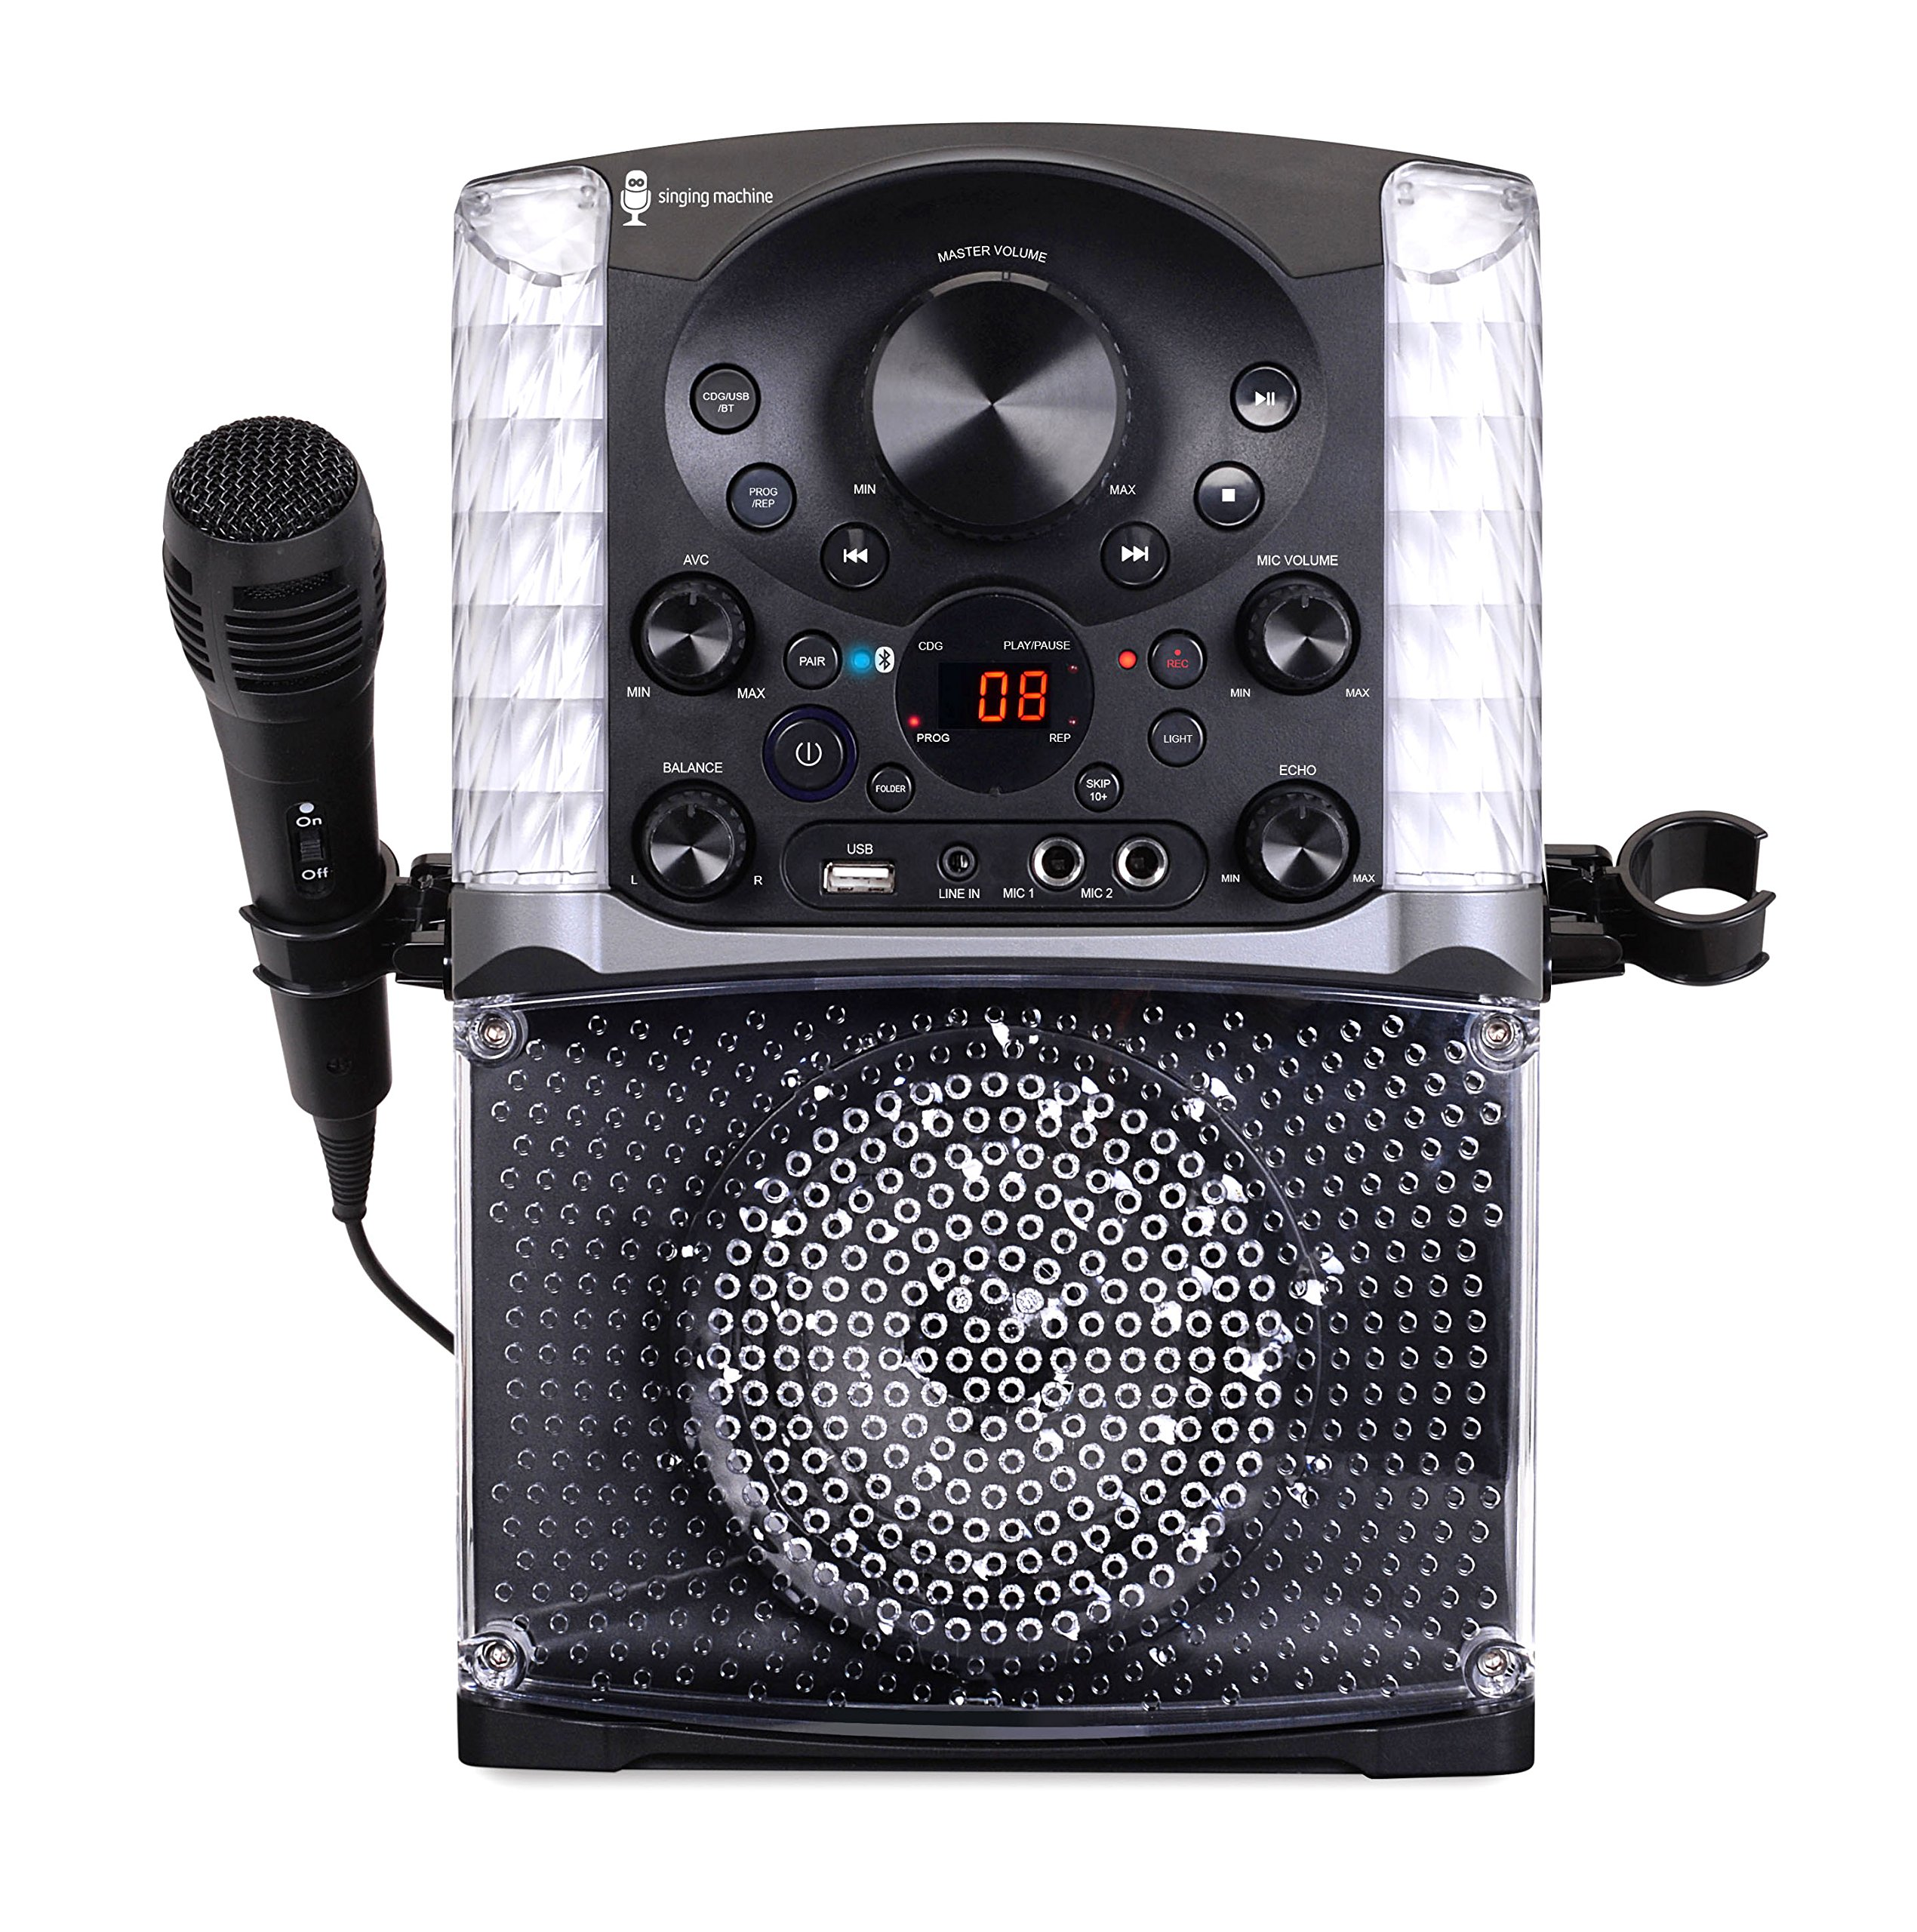 Singing Machine SML625BTBK Bluetooth CD+G Karaoke System Black by Singing Machine (Image #5)